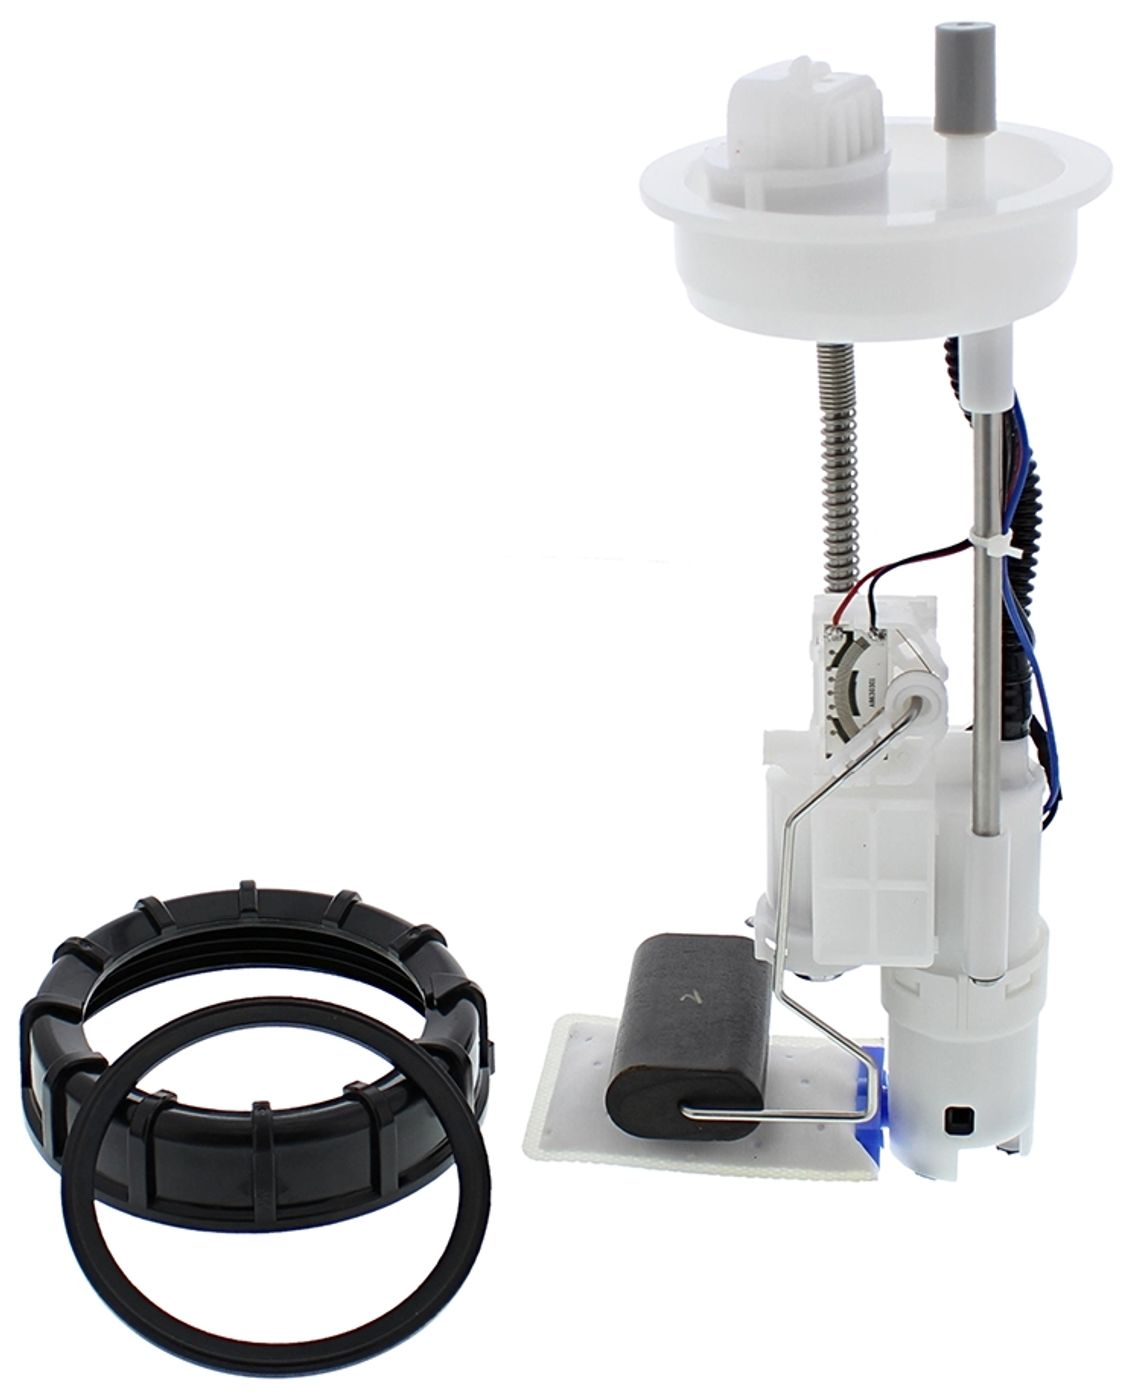 Wrp Fuel Pump Modules - WRP471018 image